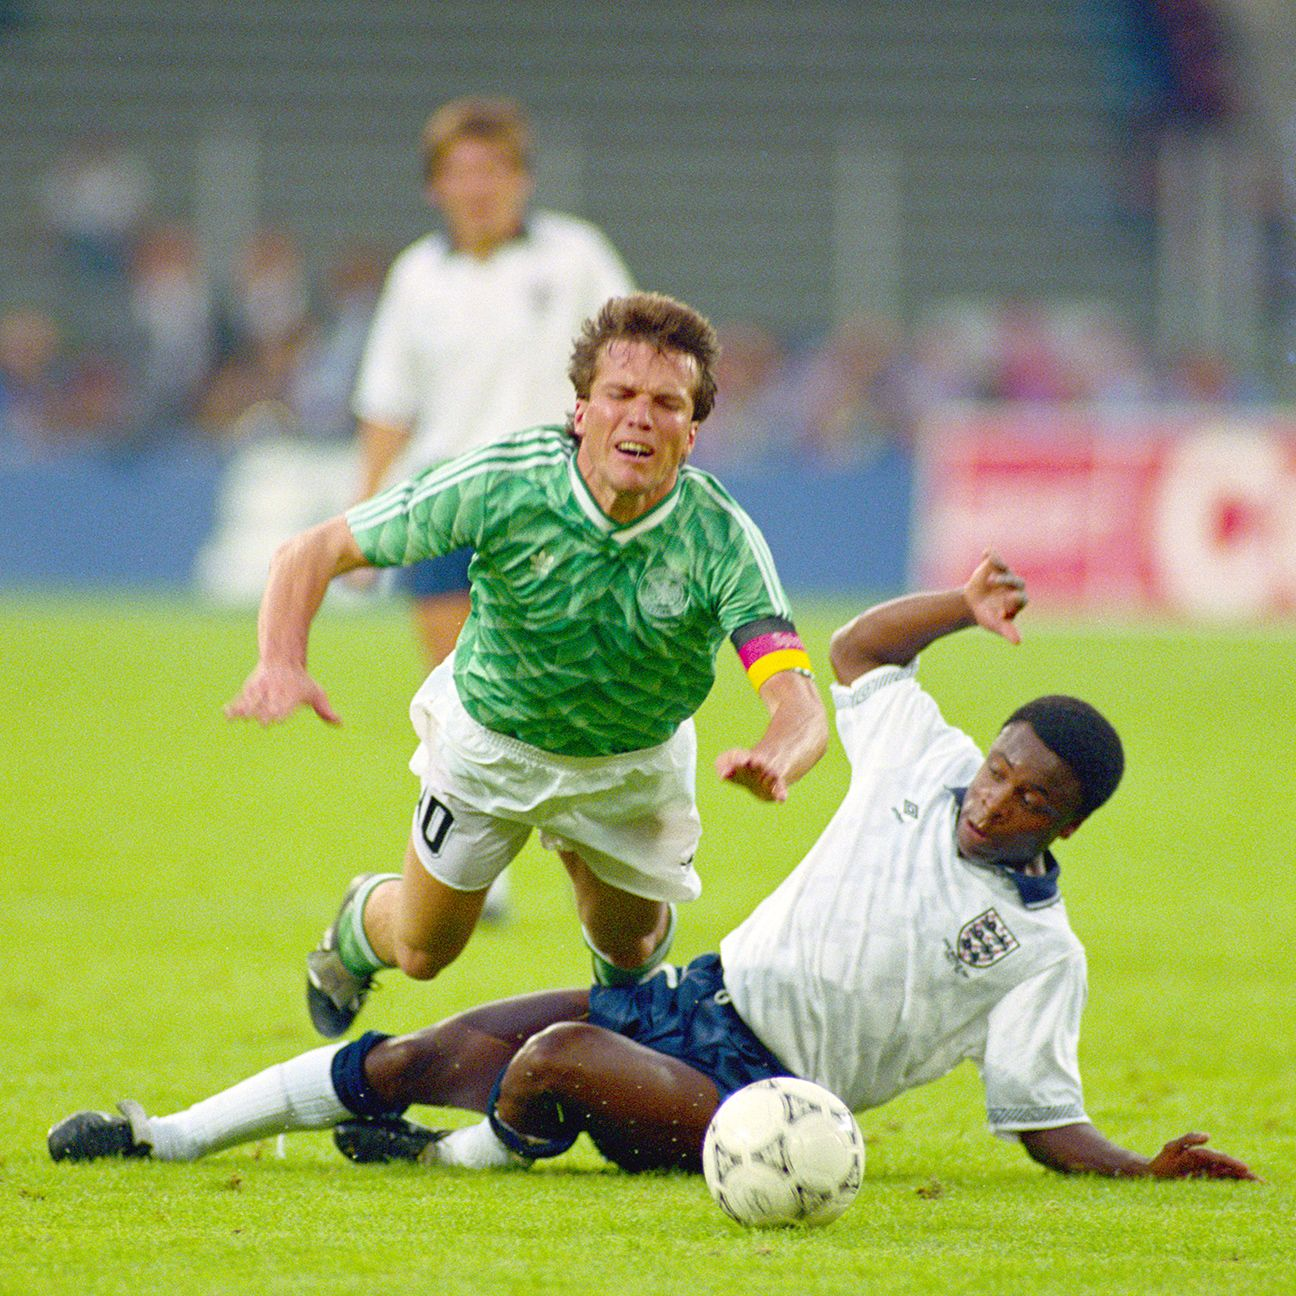 The author played an integral role in England's deep run at Italia '90.